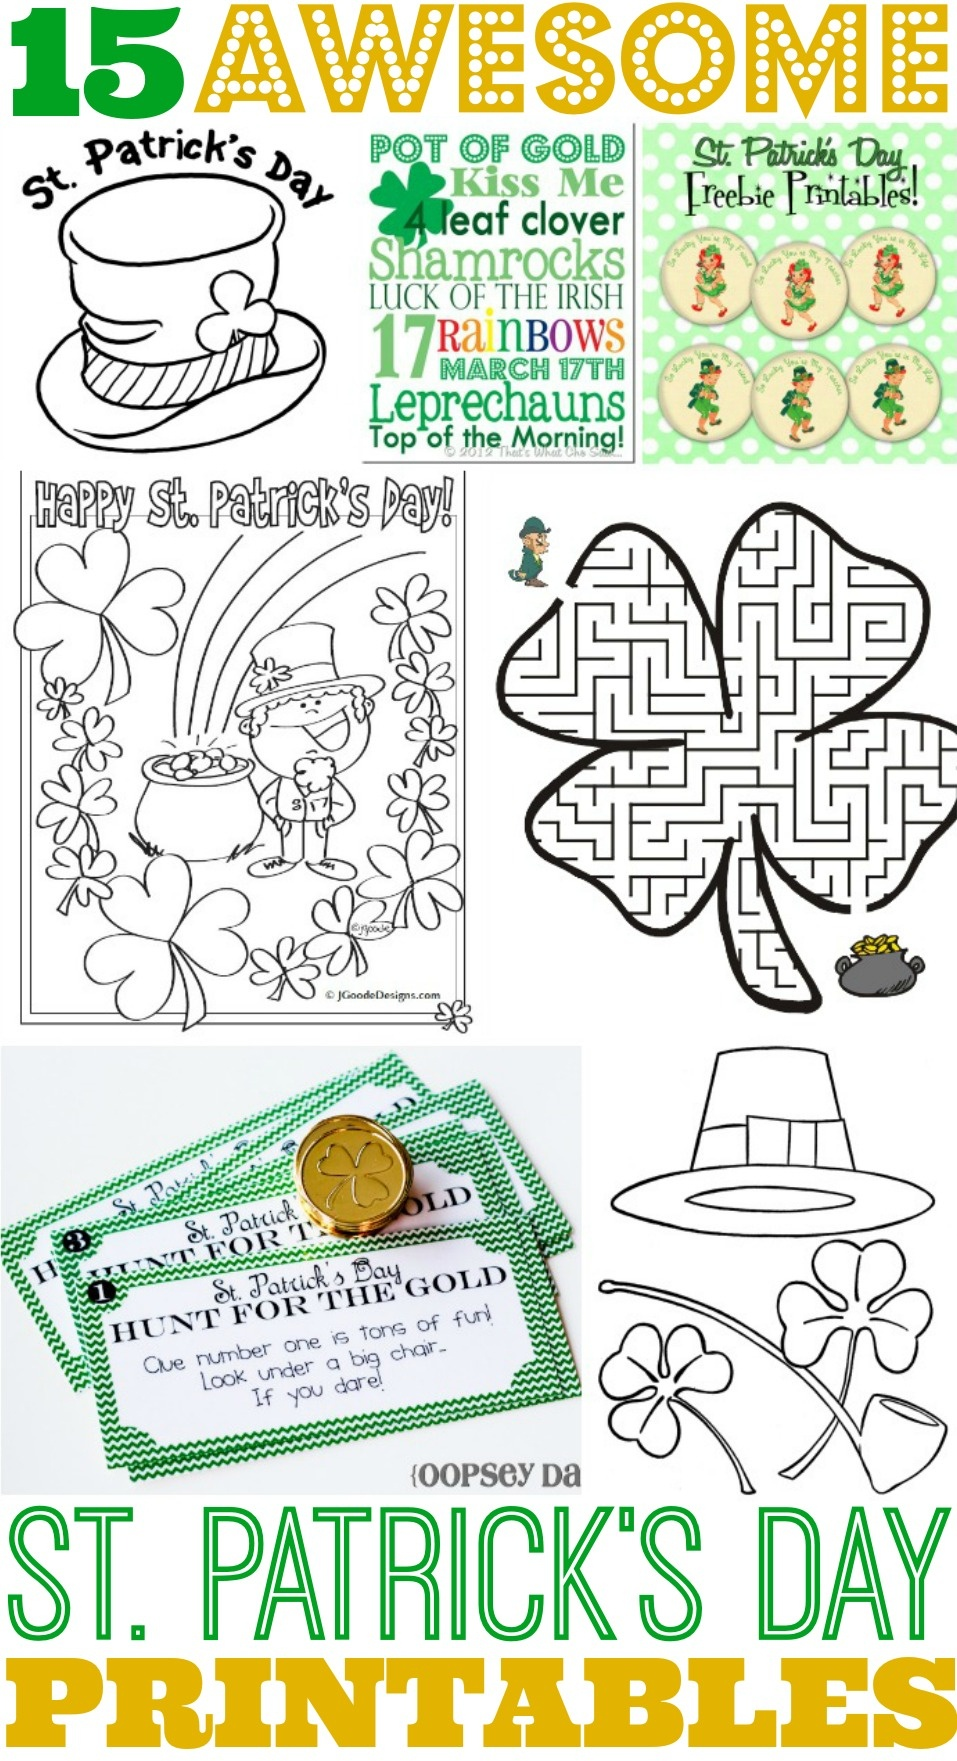 15 Awesome St. Patrick's Day Free Printables For Kids - St Patrick's Day Printables Free